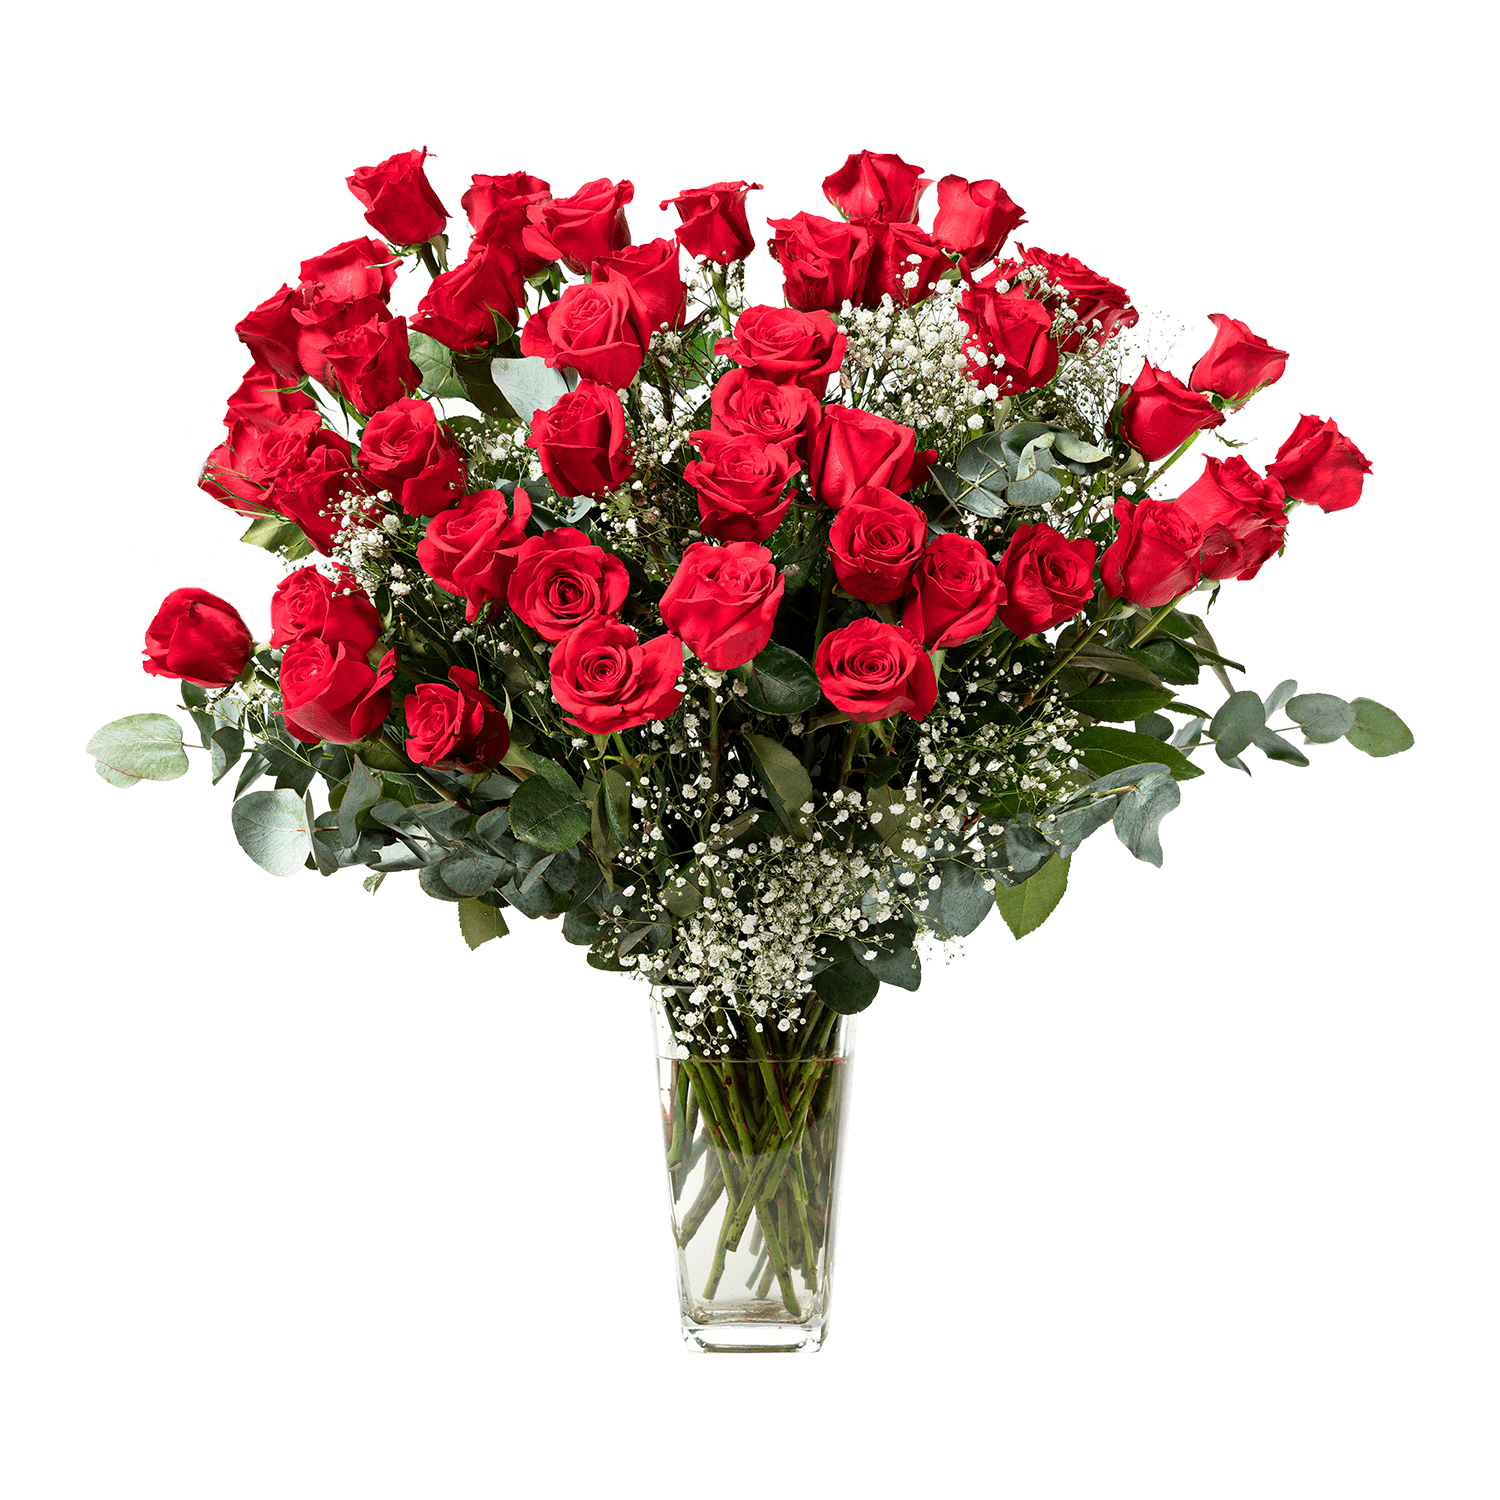 This is the ideal bouquet to show your love! For yourself, for friends, for your significant other; the most important part is to love always.